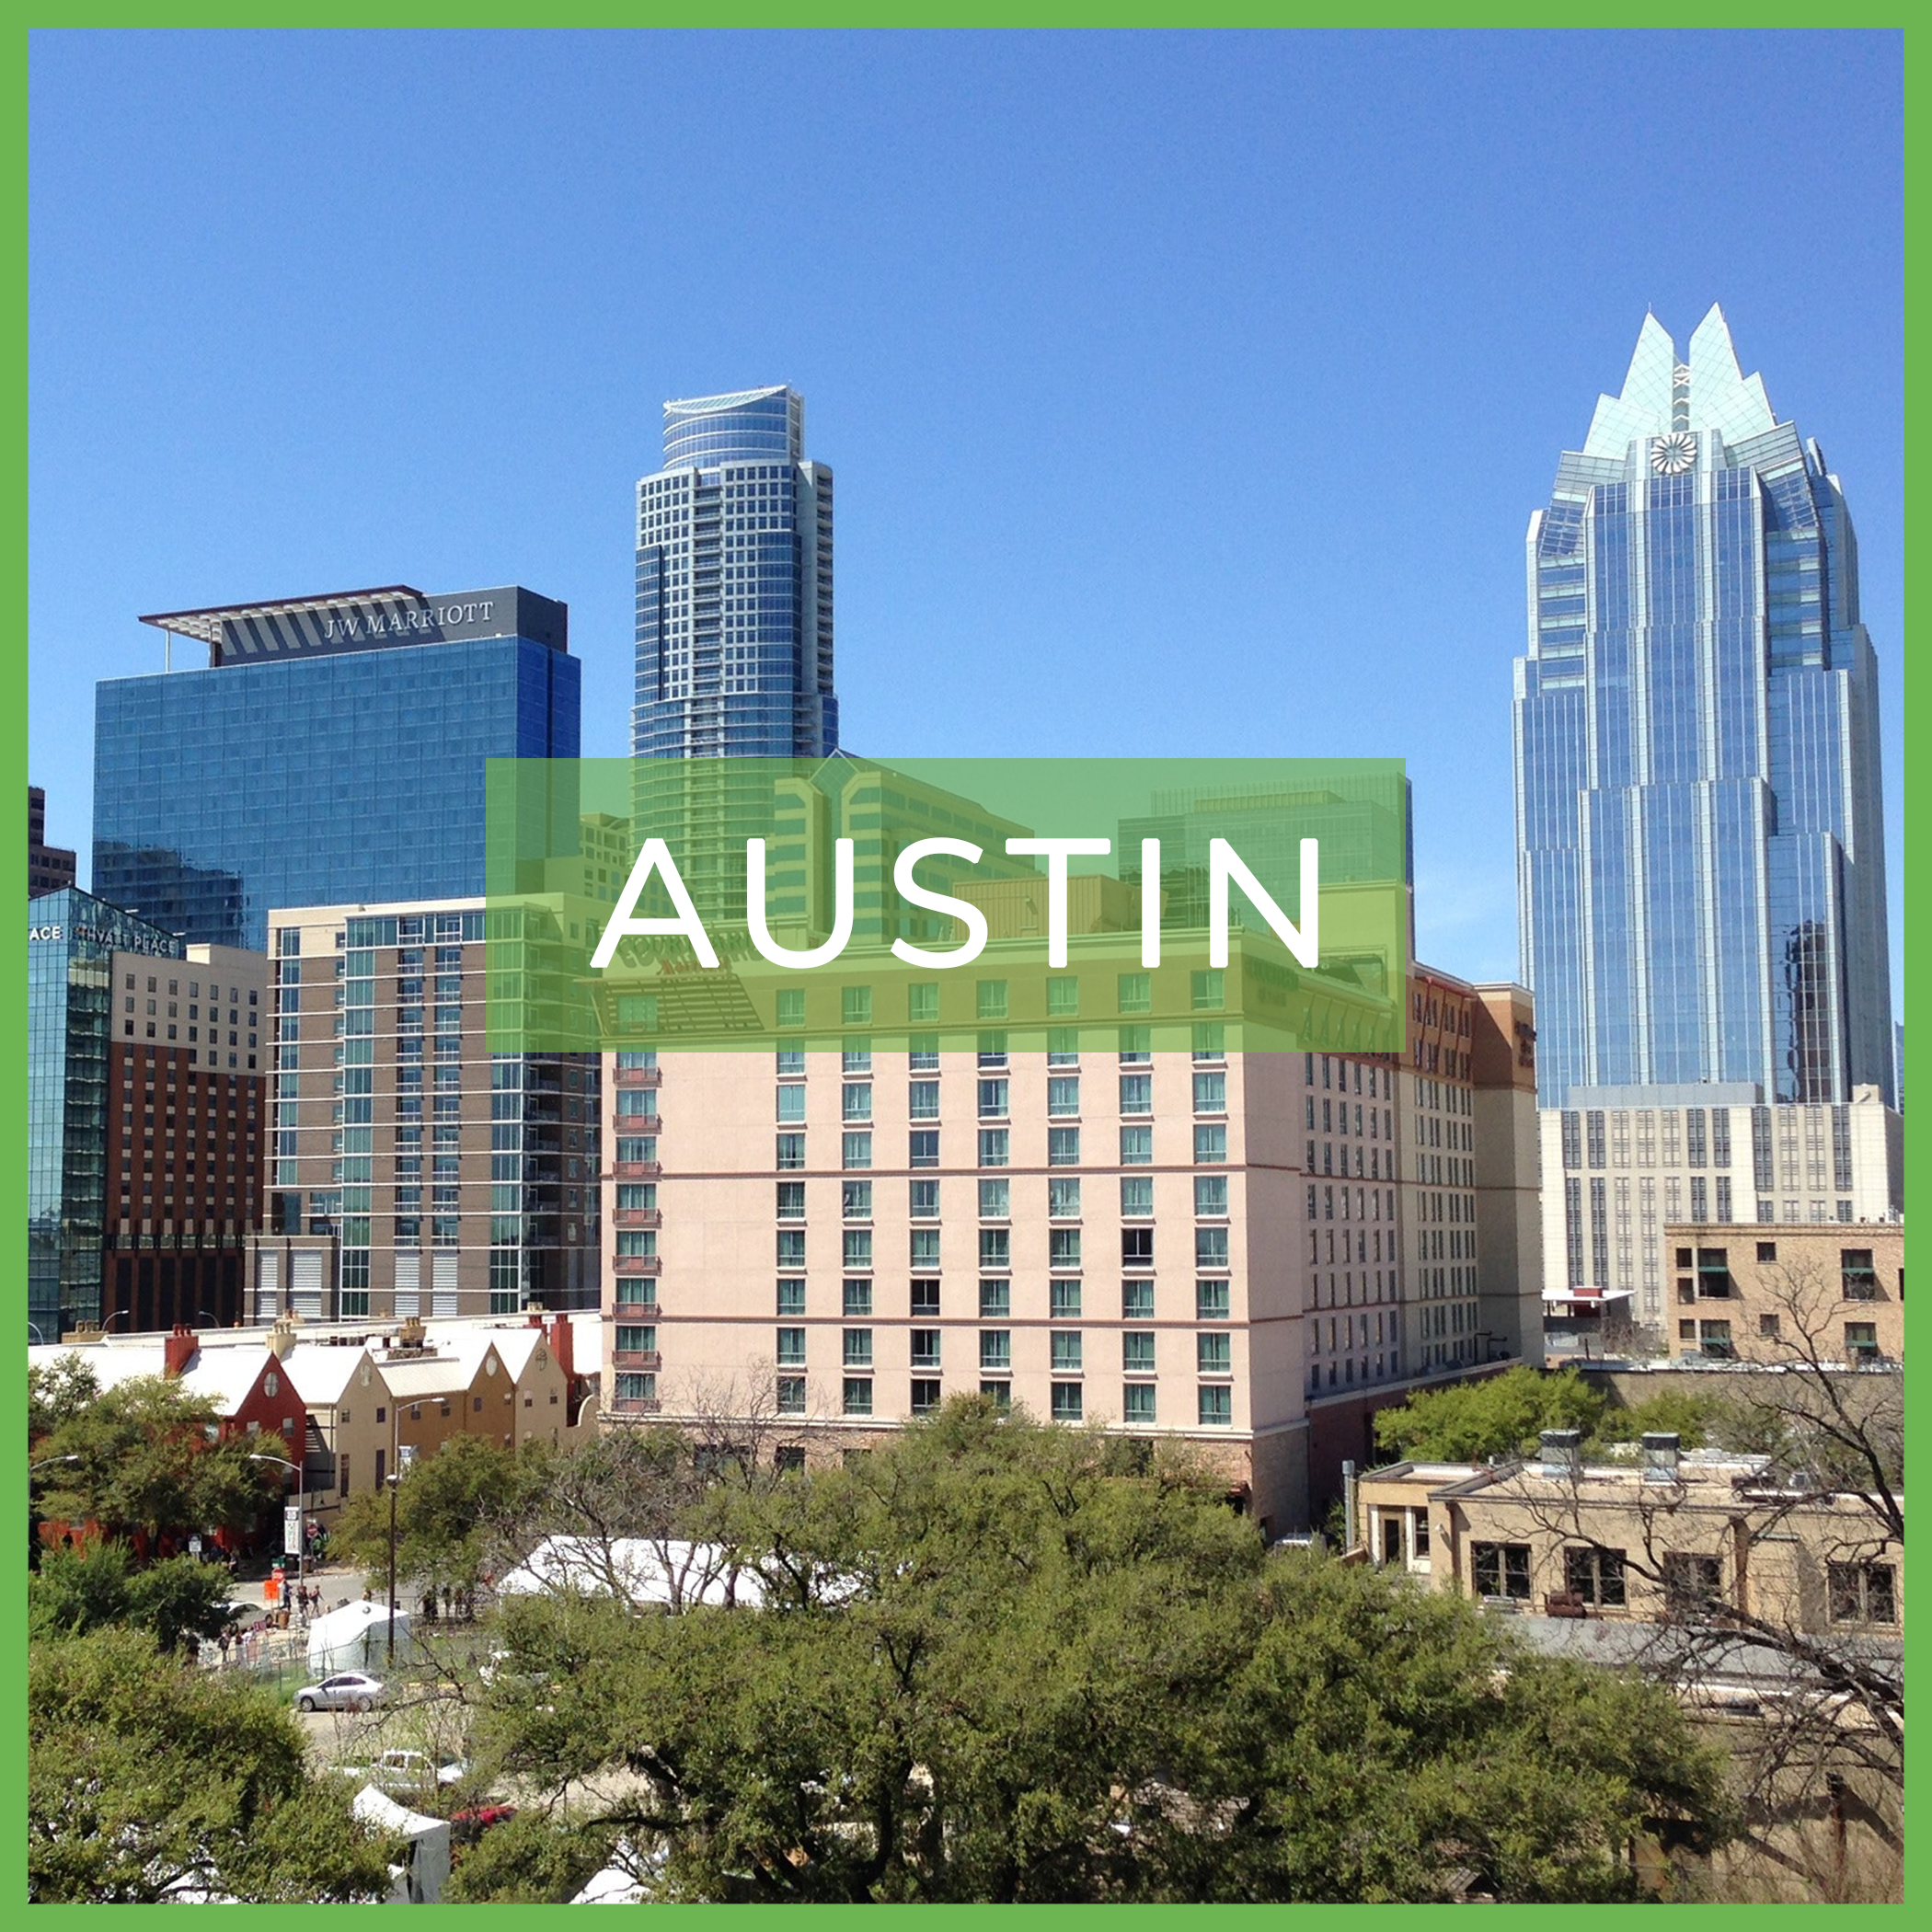 aba-therapy-center-locations-austin-texas-learning-center-cultivate.png